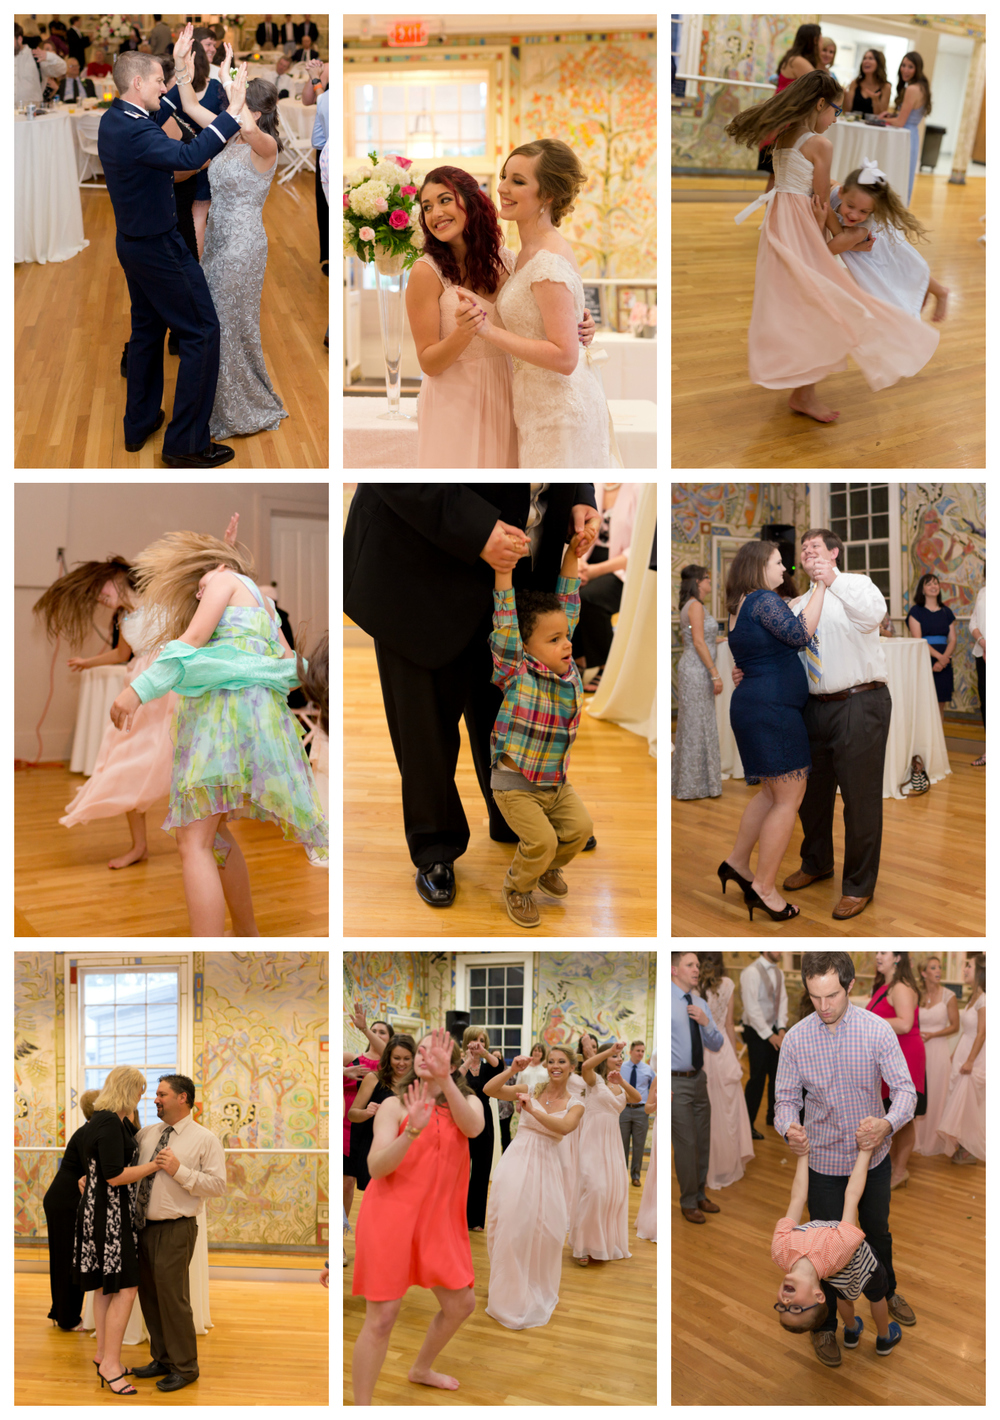 dancing at wedding reception at Ocean Springs Community Center